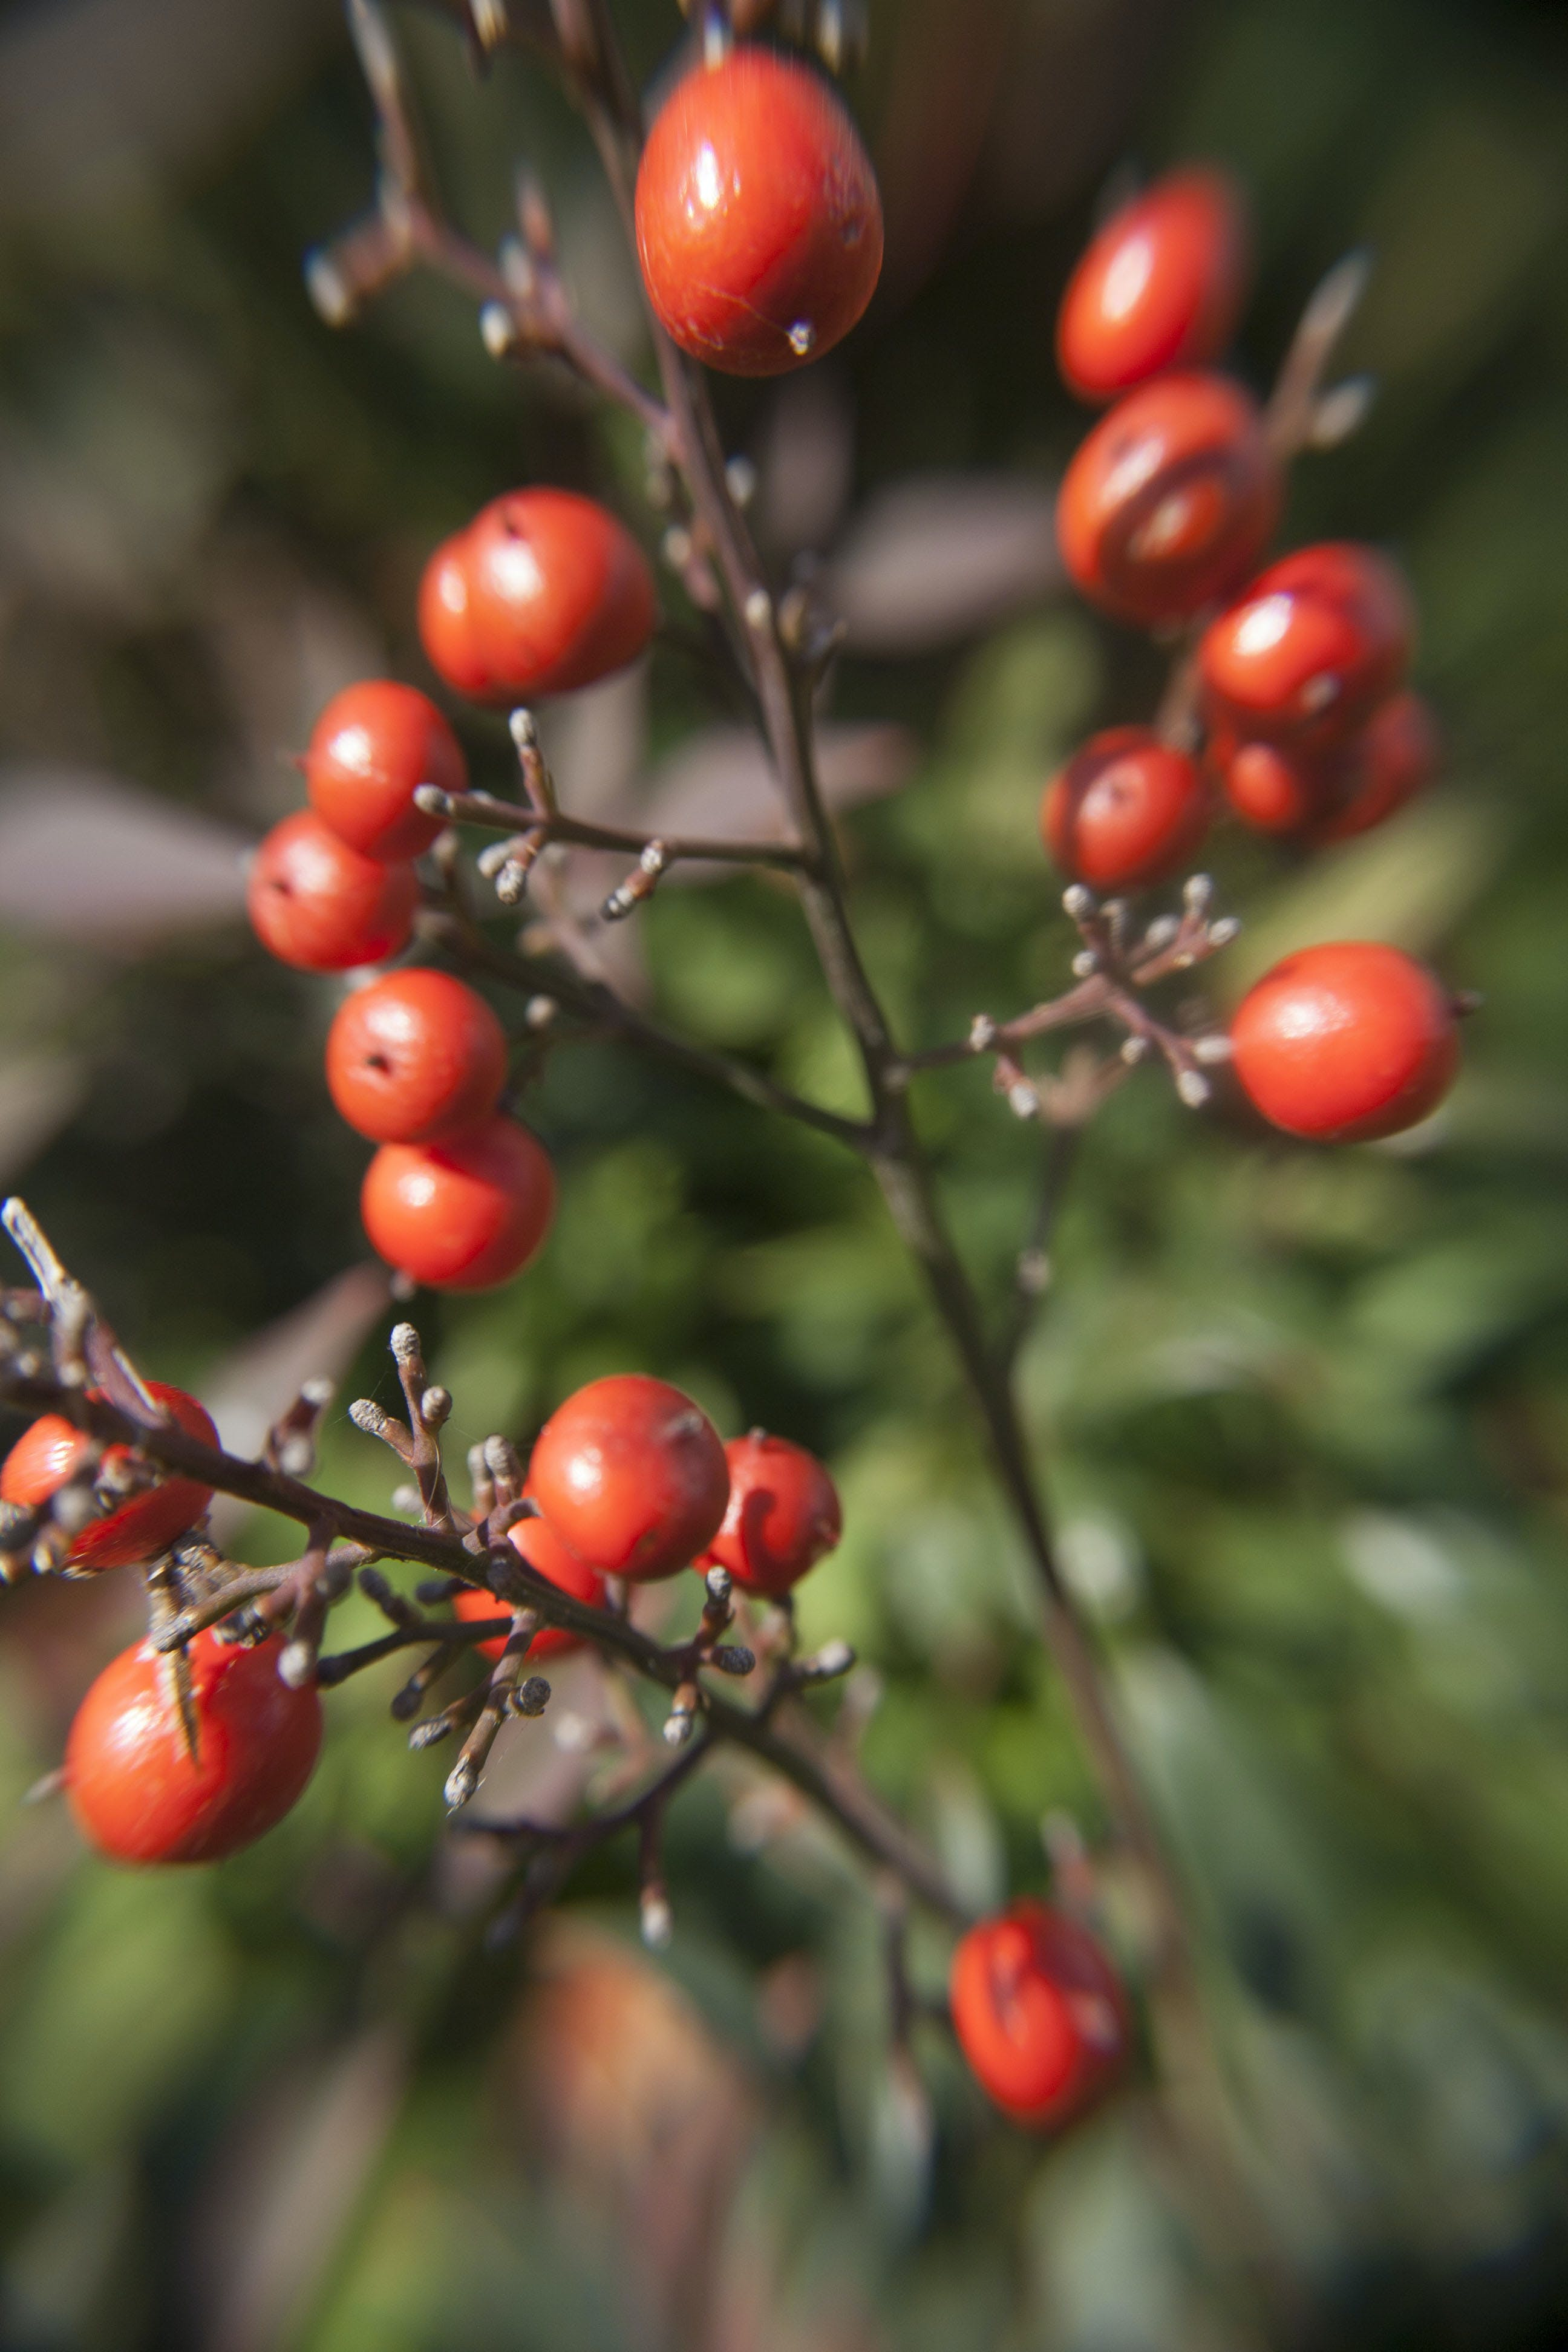 Free stock photo of berries, Berries on a plant, plant, red